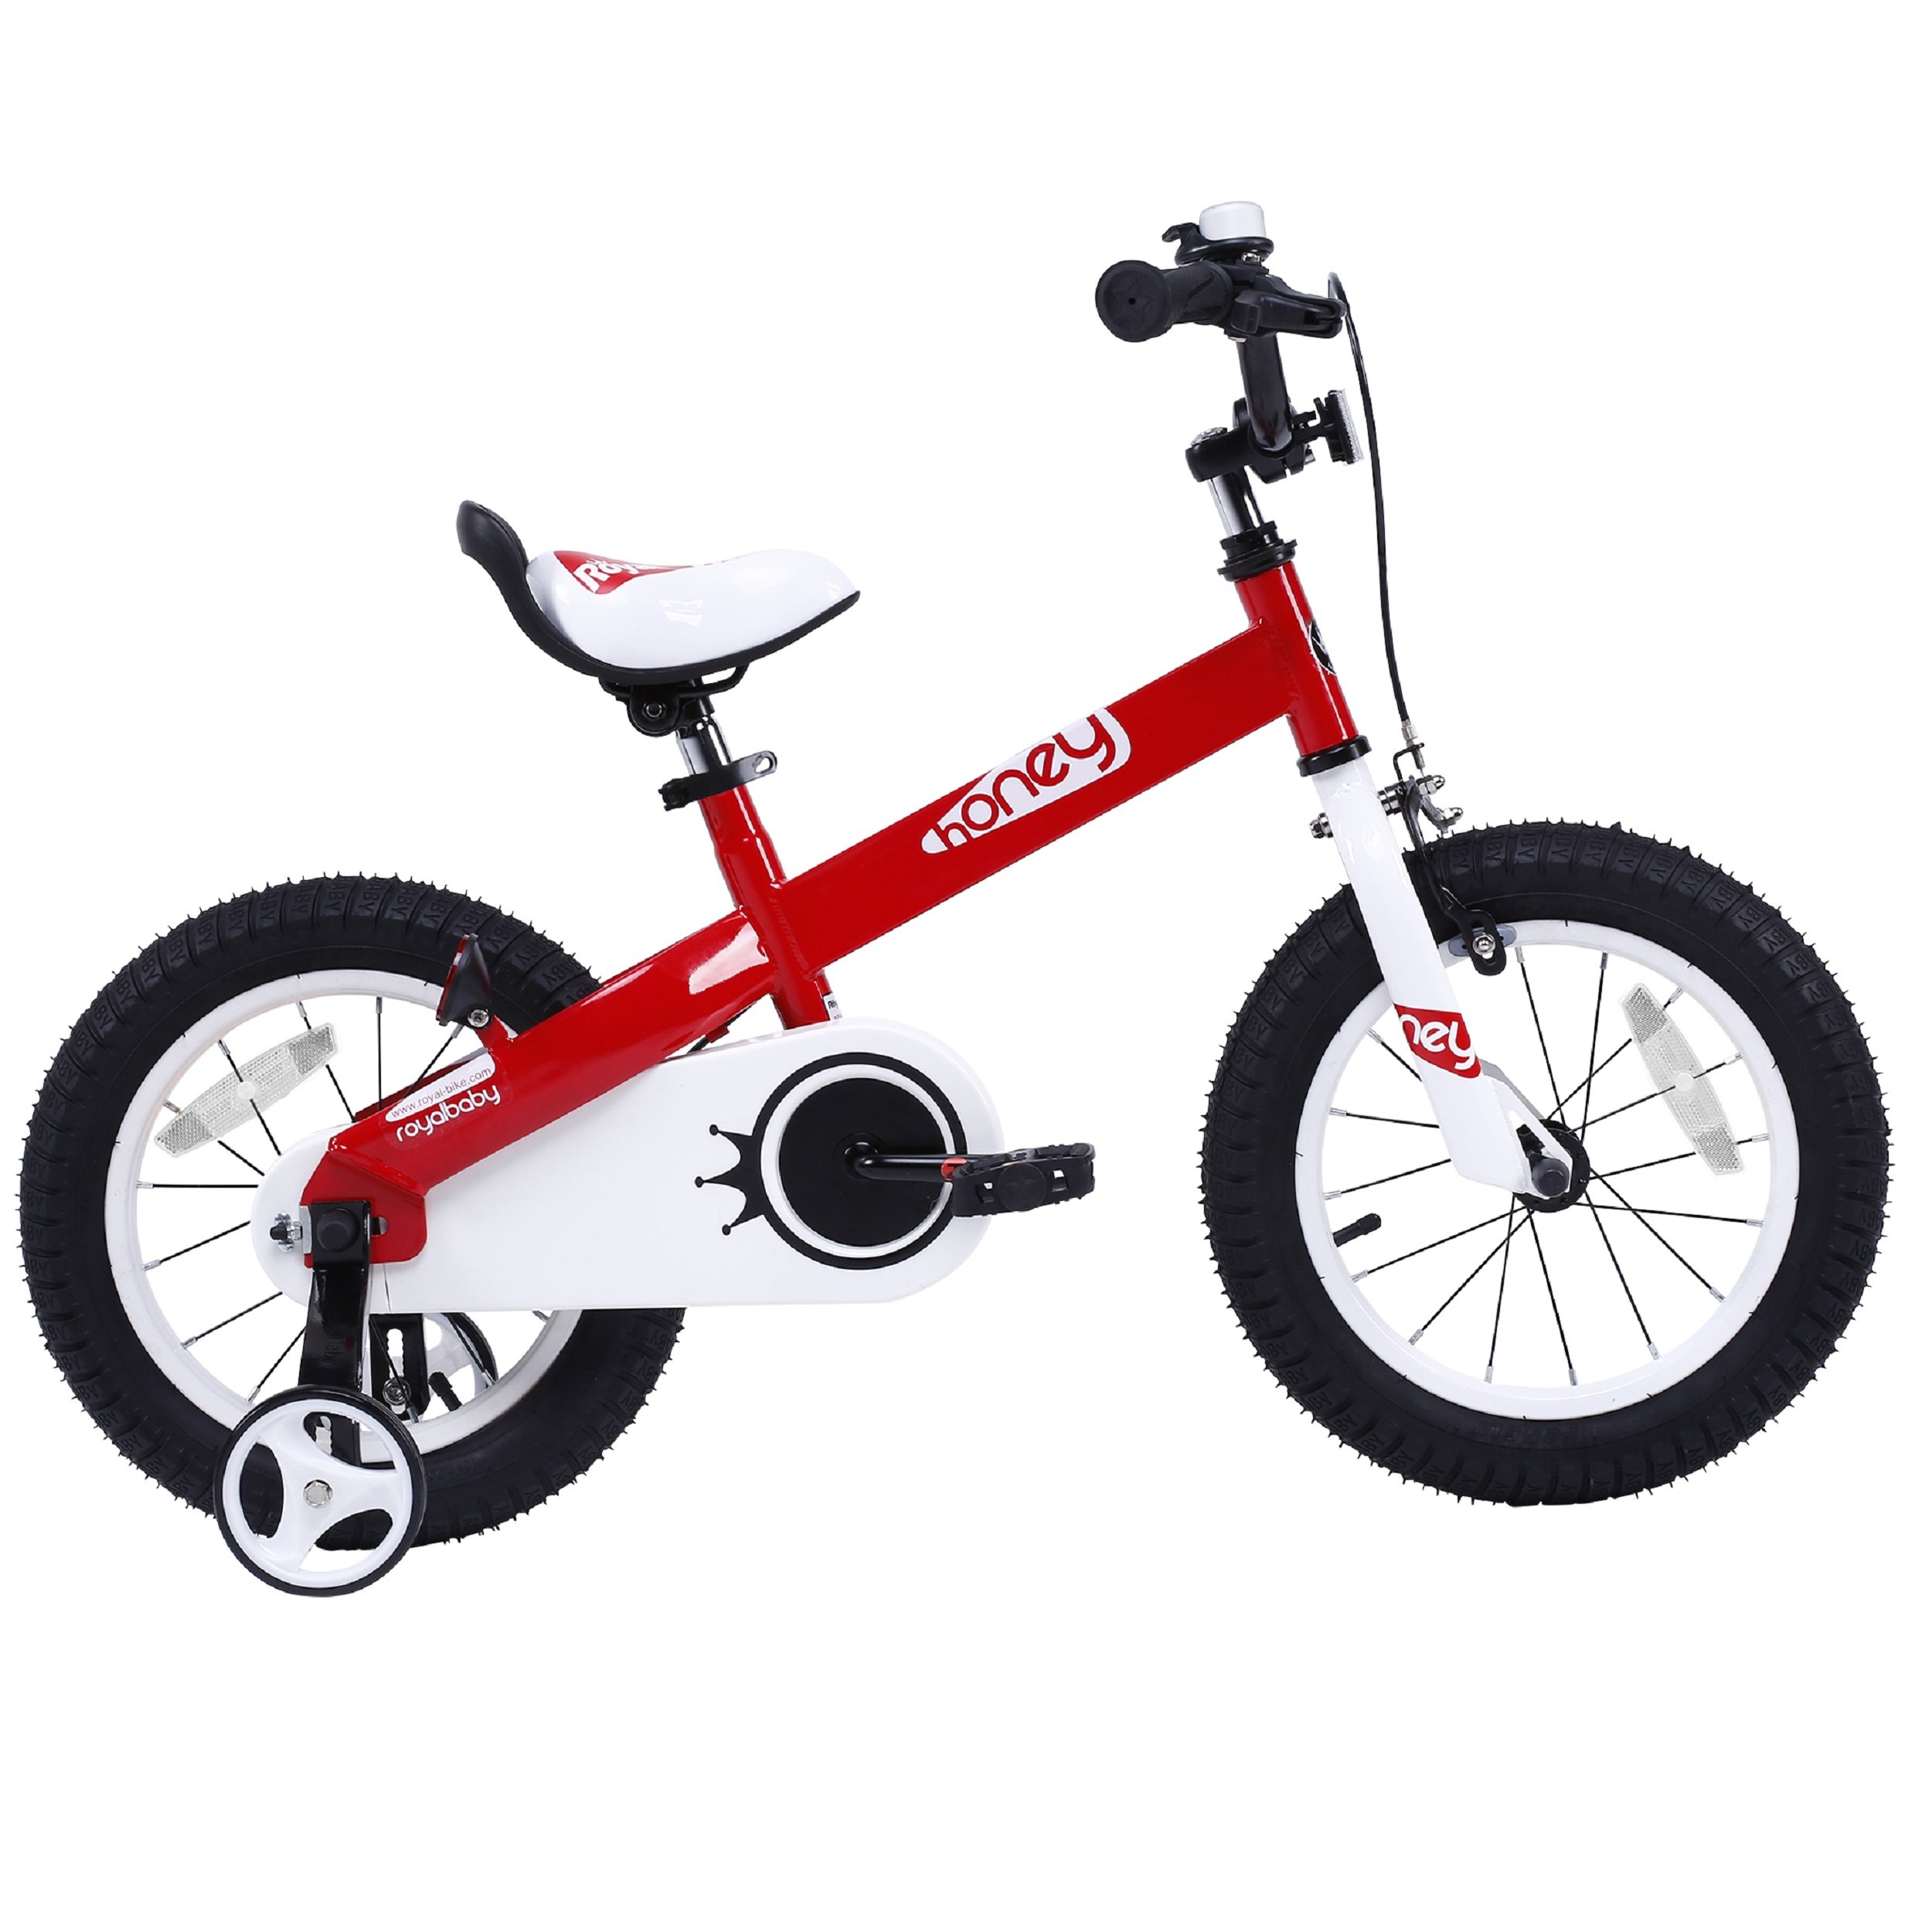 RoyalBaby CubeTube Kid's bikes, unisex children's bikes with training wheels, various trendy features, gifts for fashionable boys & girls, Red Honey, 14 inch by Royalbaby